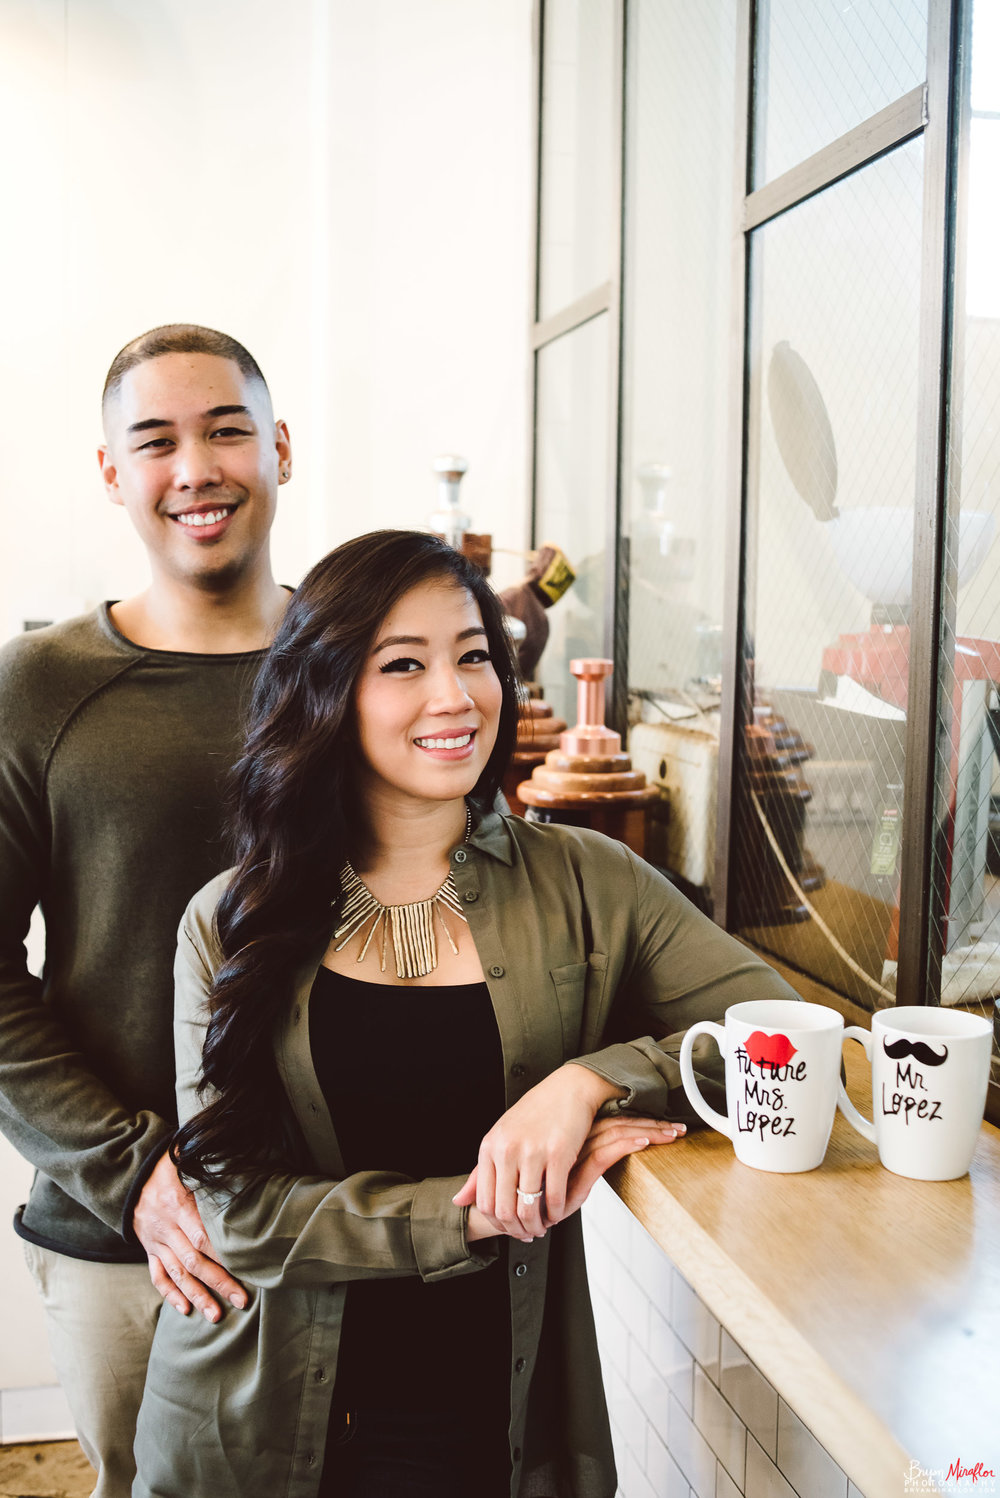 Bryan-Miraflor-Photography-Trisha-Dexter-Coffee-Engagement-DTLA-20170129-104.jpg